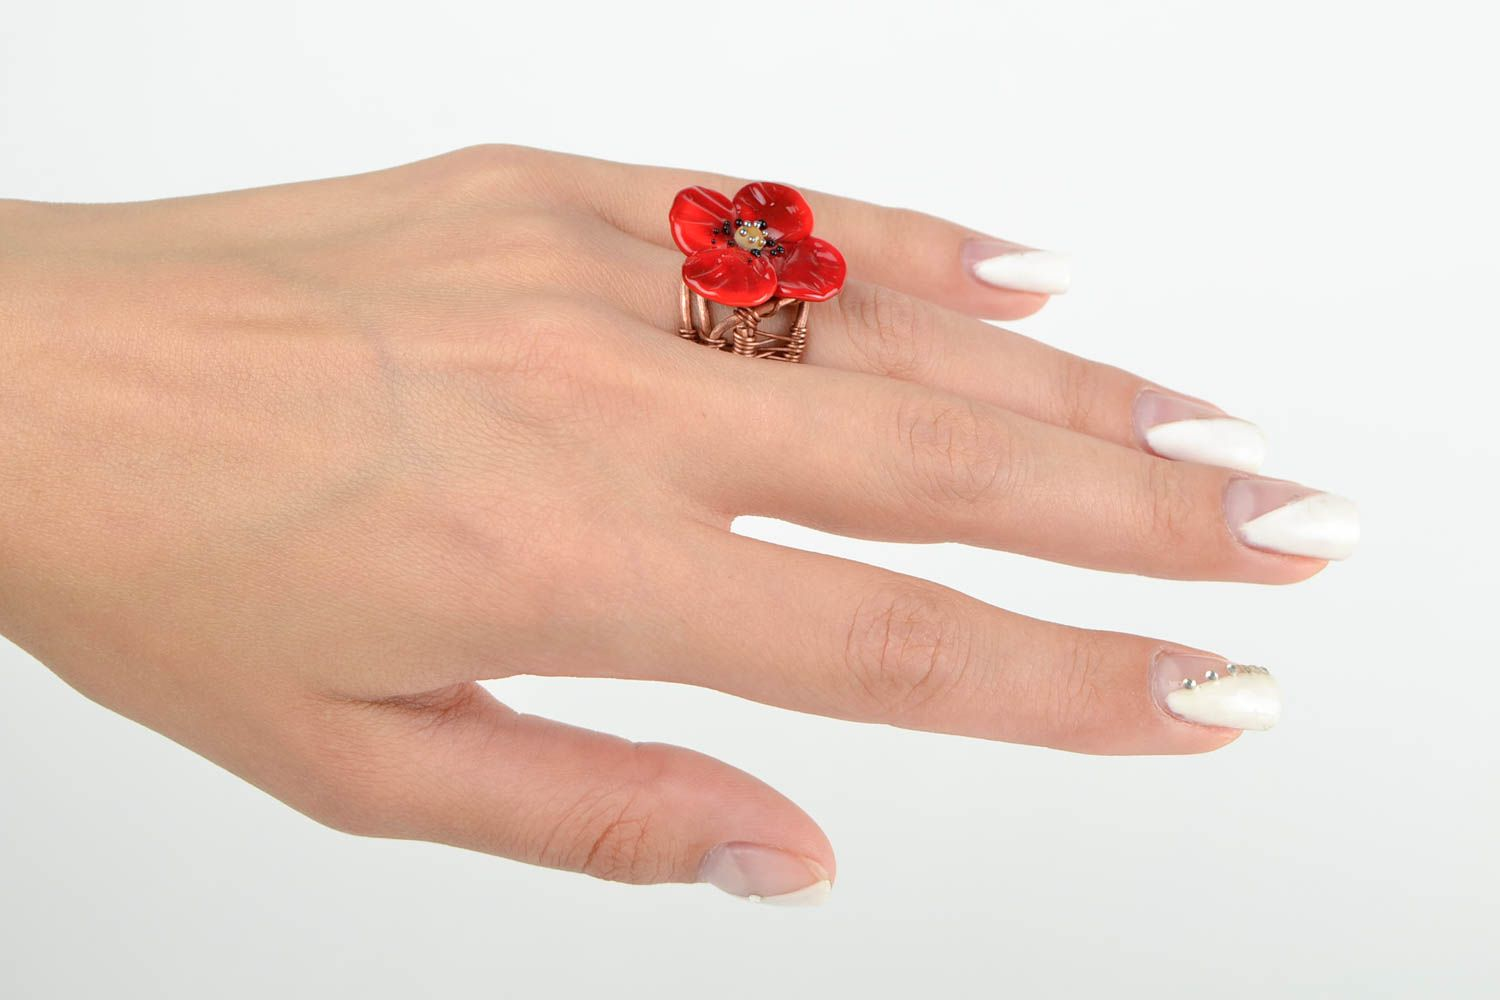 Handmade ring designer accessory gift for her unusual ring with flowers photo 2